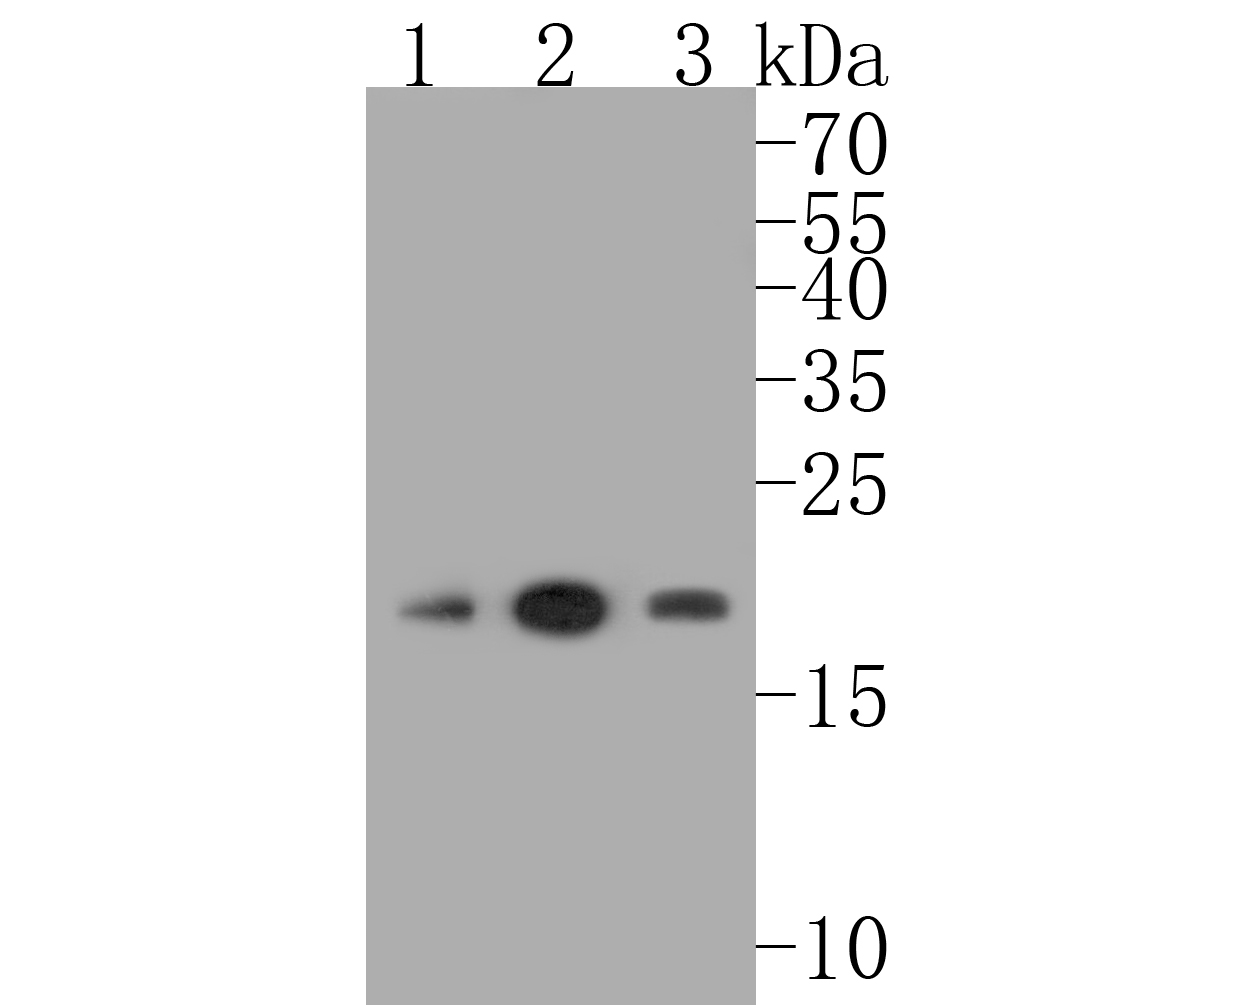 Western blot analysis of CDC42 on different lysates. Proteins were transferred to a PVDF membrane and blocked with 5% BSA in PBS for 1 hour at room temperature. The primary antibody (ET1701-7, 1/500) was used in 5% BSA at room temperature for 2 hours. Goat Anti-Rabbit IgG - HRP Secondary Antibody (HA1001) at 1:5,000 dilution was used for 1 hour at room temperature.<br />  Positive control: <br />  Lane 1: Hela cell lysate<br />  Lane 2: HepG2 cell lysate<br />  Lane 3: Jurkat cell lysate